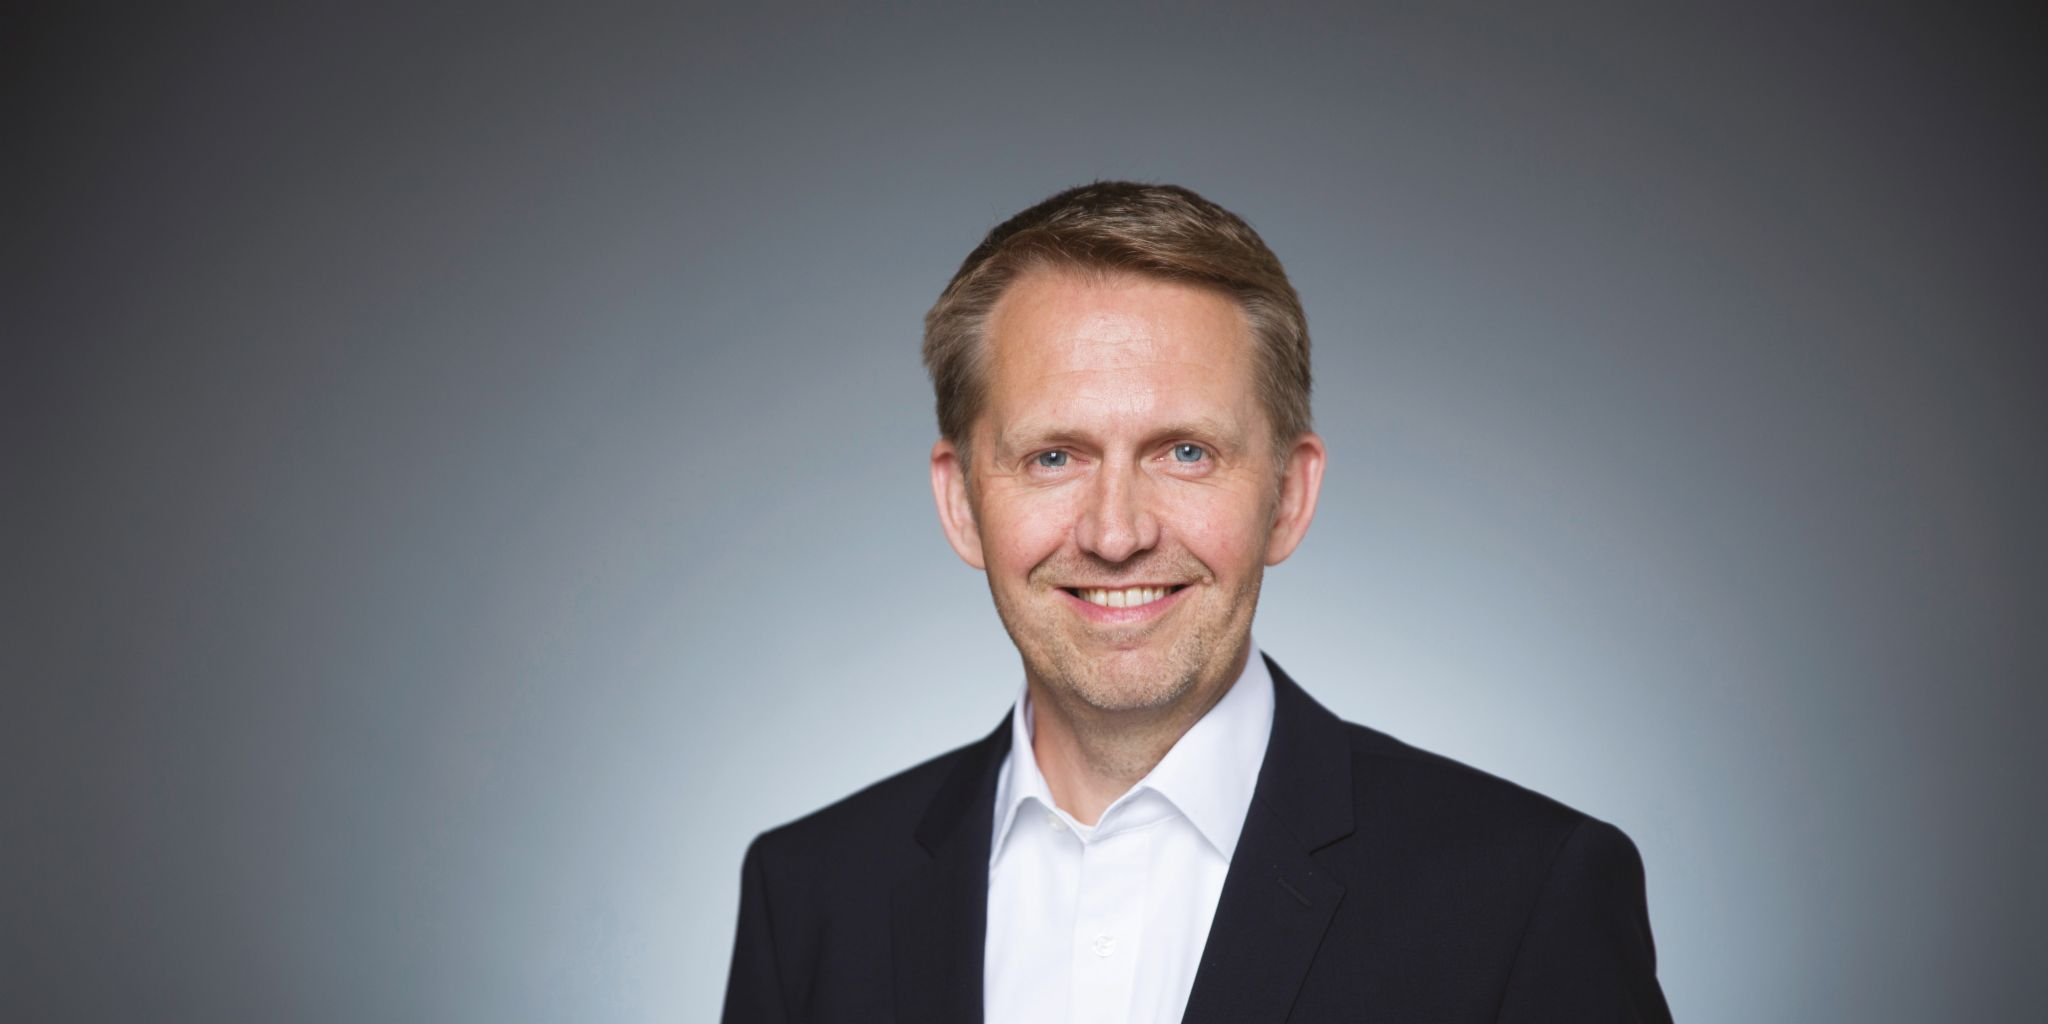 Andreas Kropp, Commercial Director at EOS Deutschland GmbH